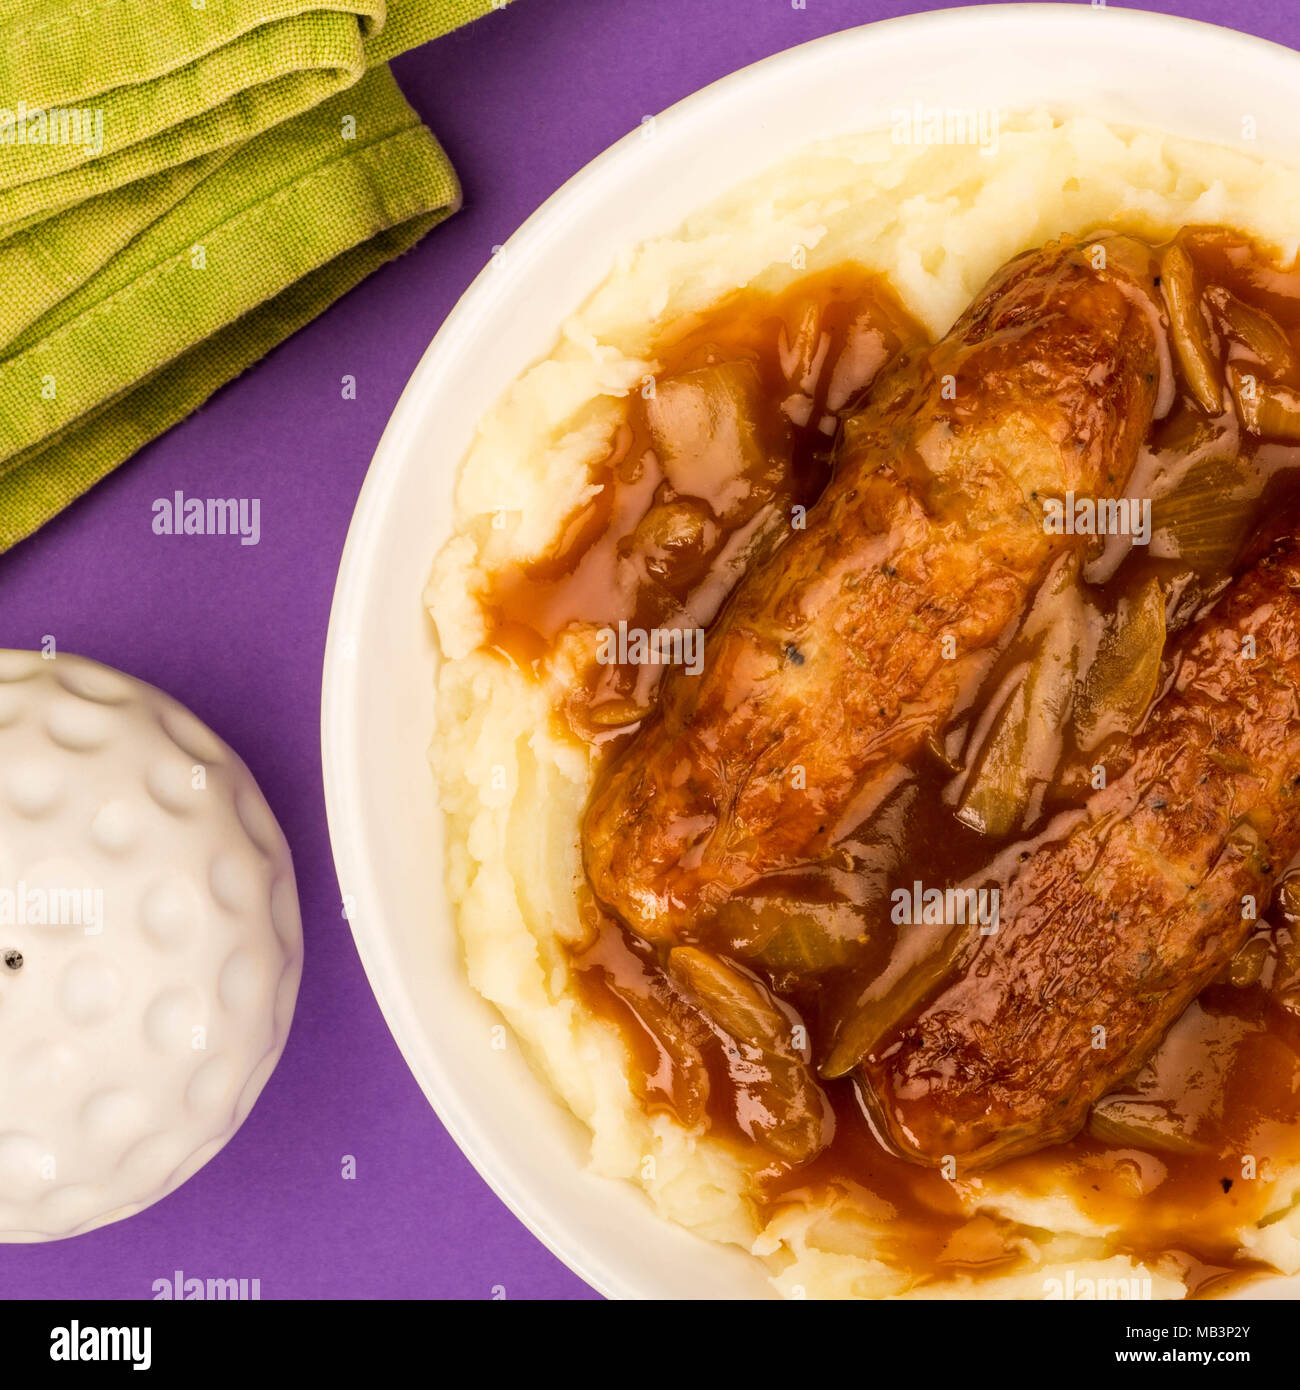 Sausage And Mashed Potatoes With Onion Gravy Against A Purple Background - Stock Image